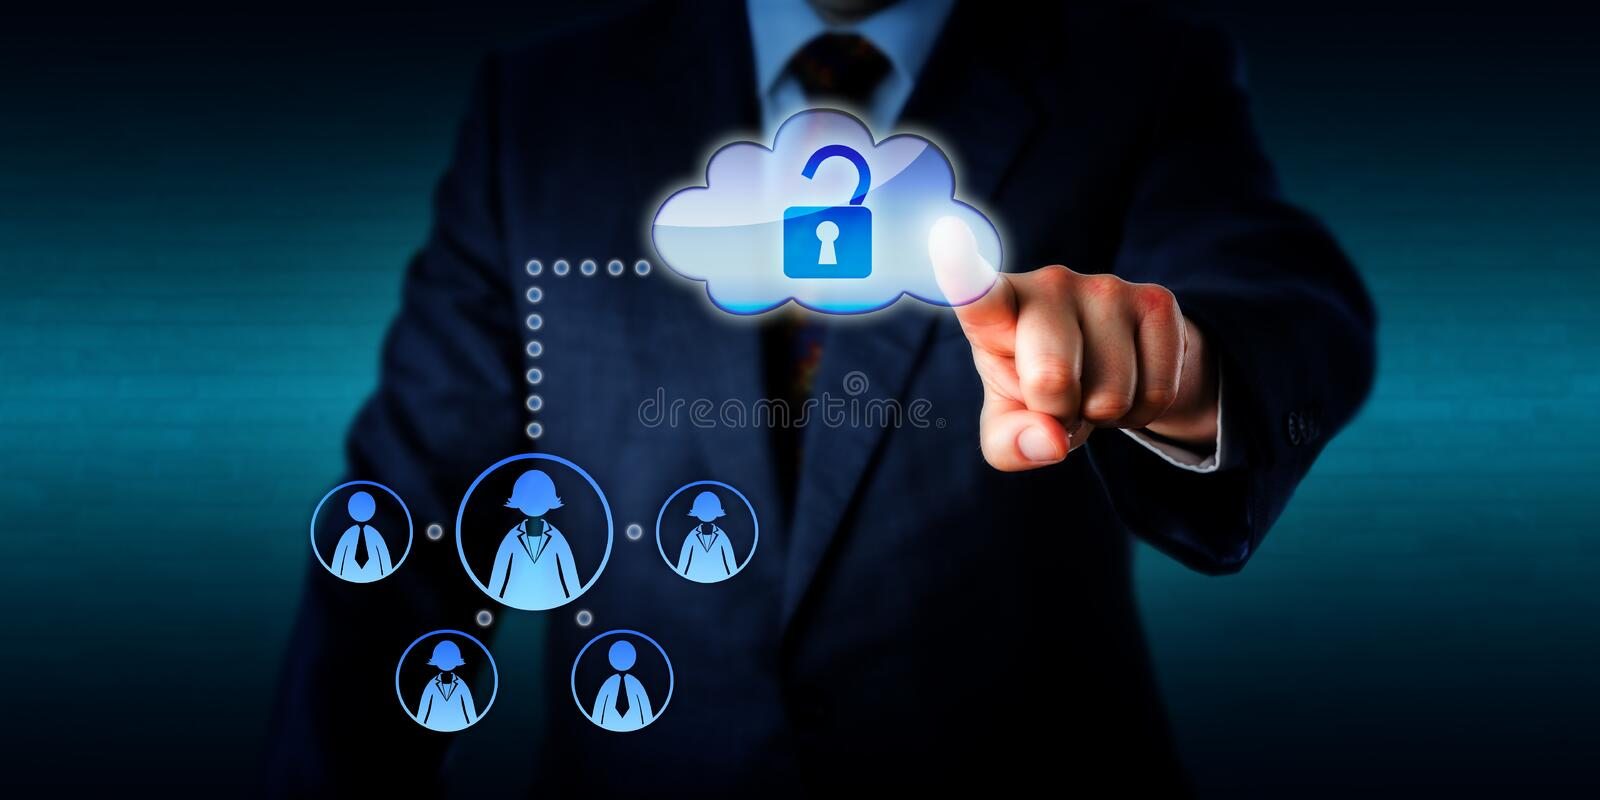 Encargado Unlocking Access To un trabajo Team Via Cloud imagenes de archivo